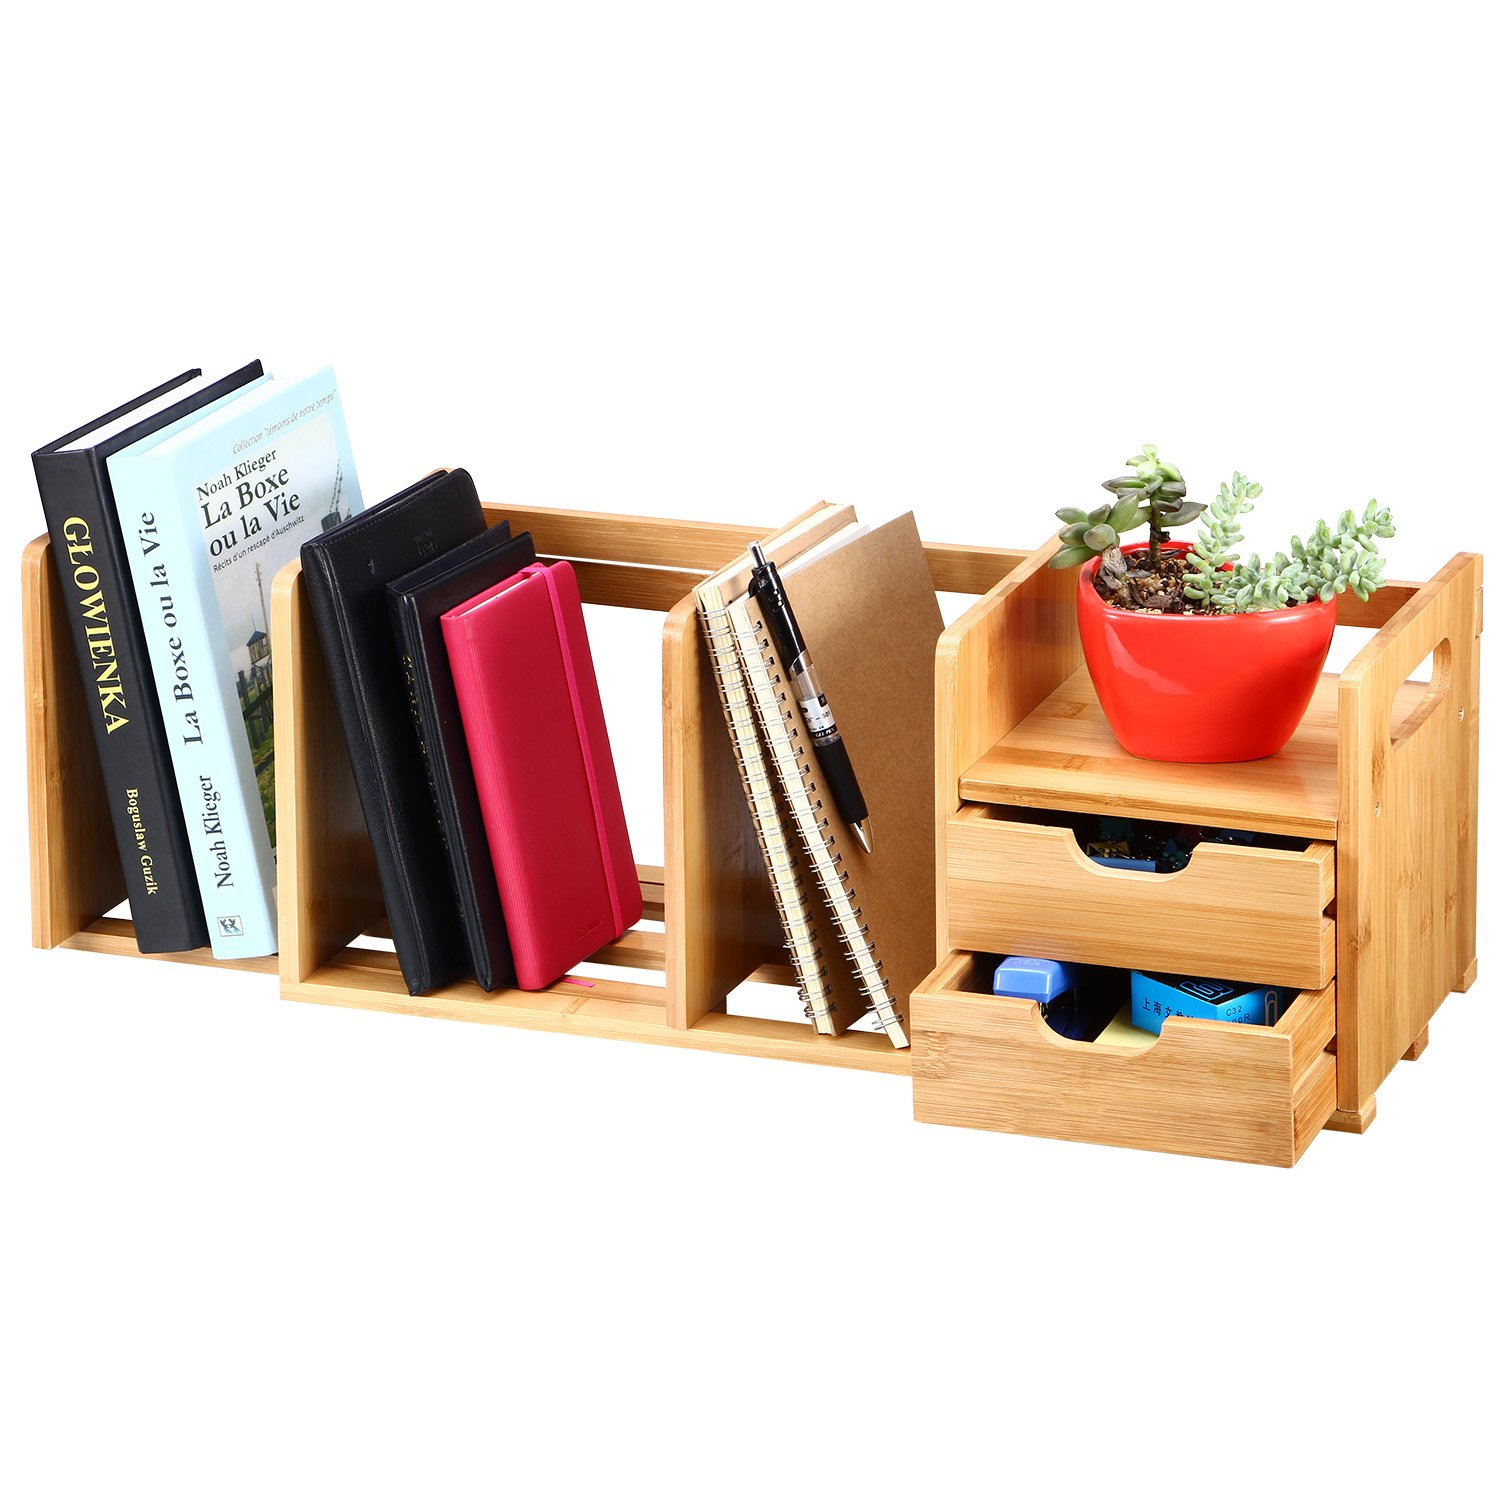 Olive Bamboo Desk Organizer Expandable Book & File Shelves, Office Storage Rack Bookshelf with 2 Drawers by Olive